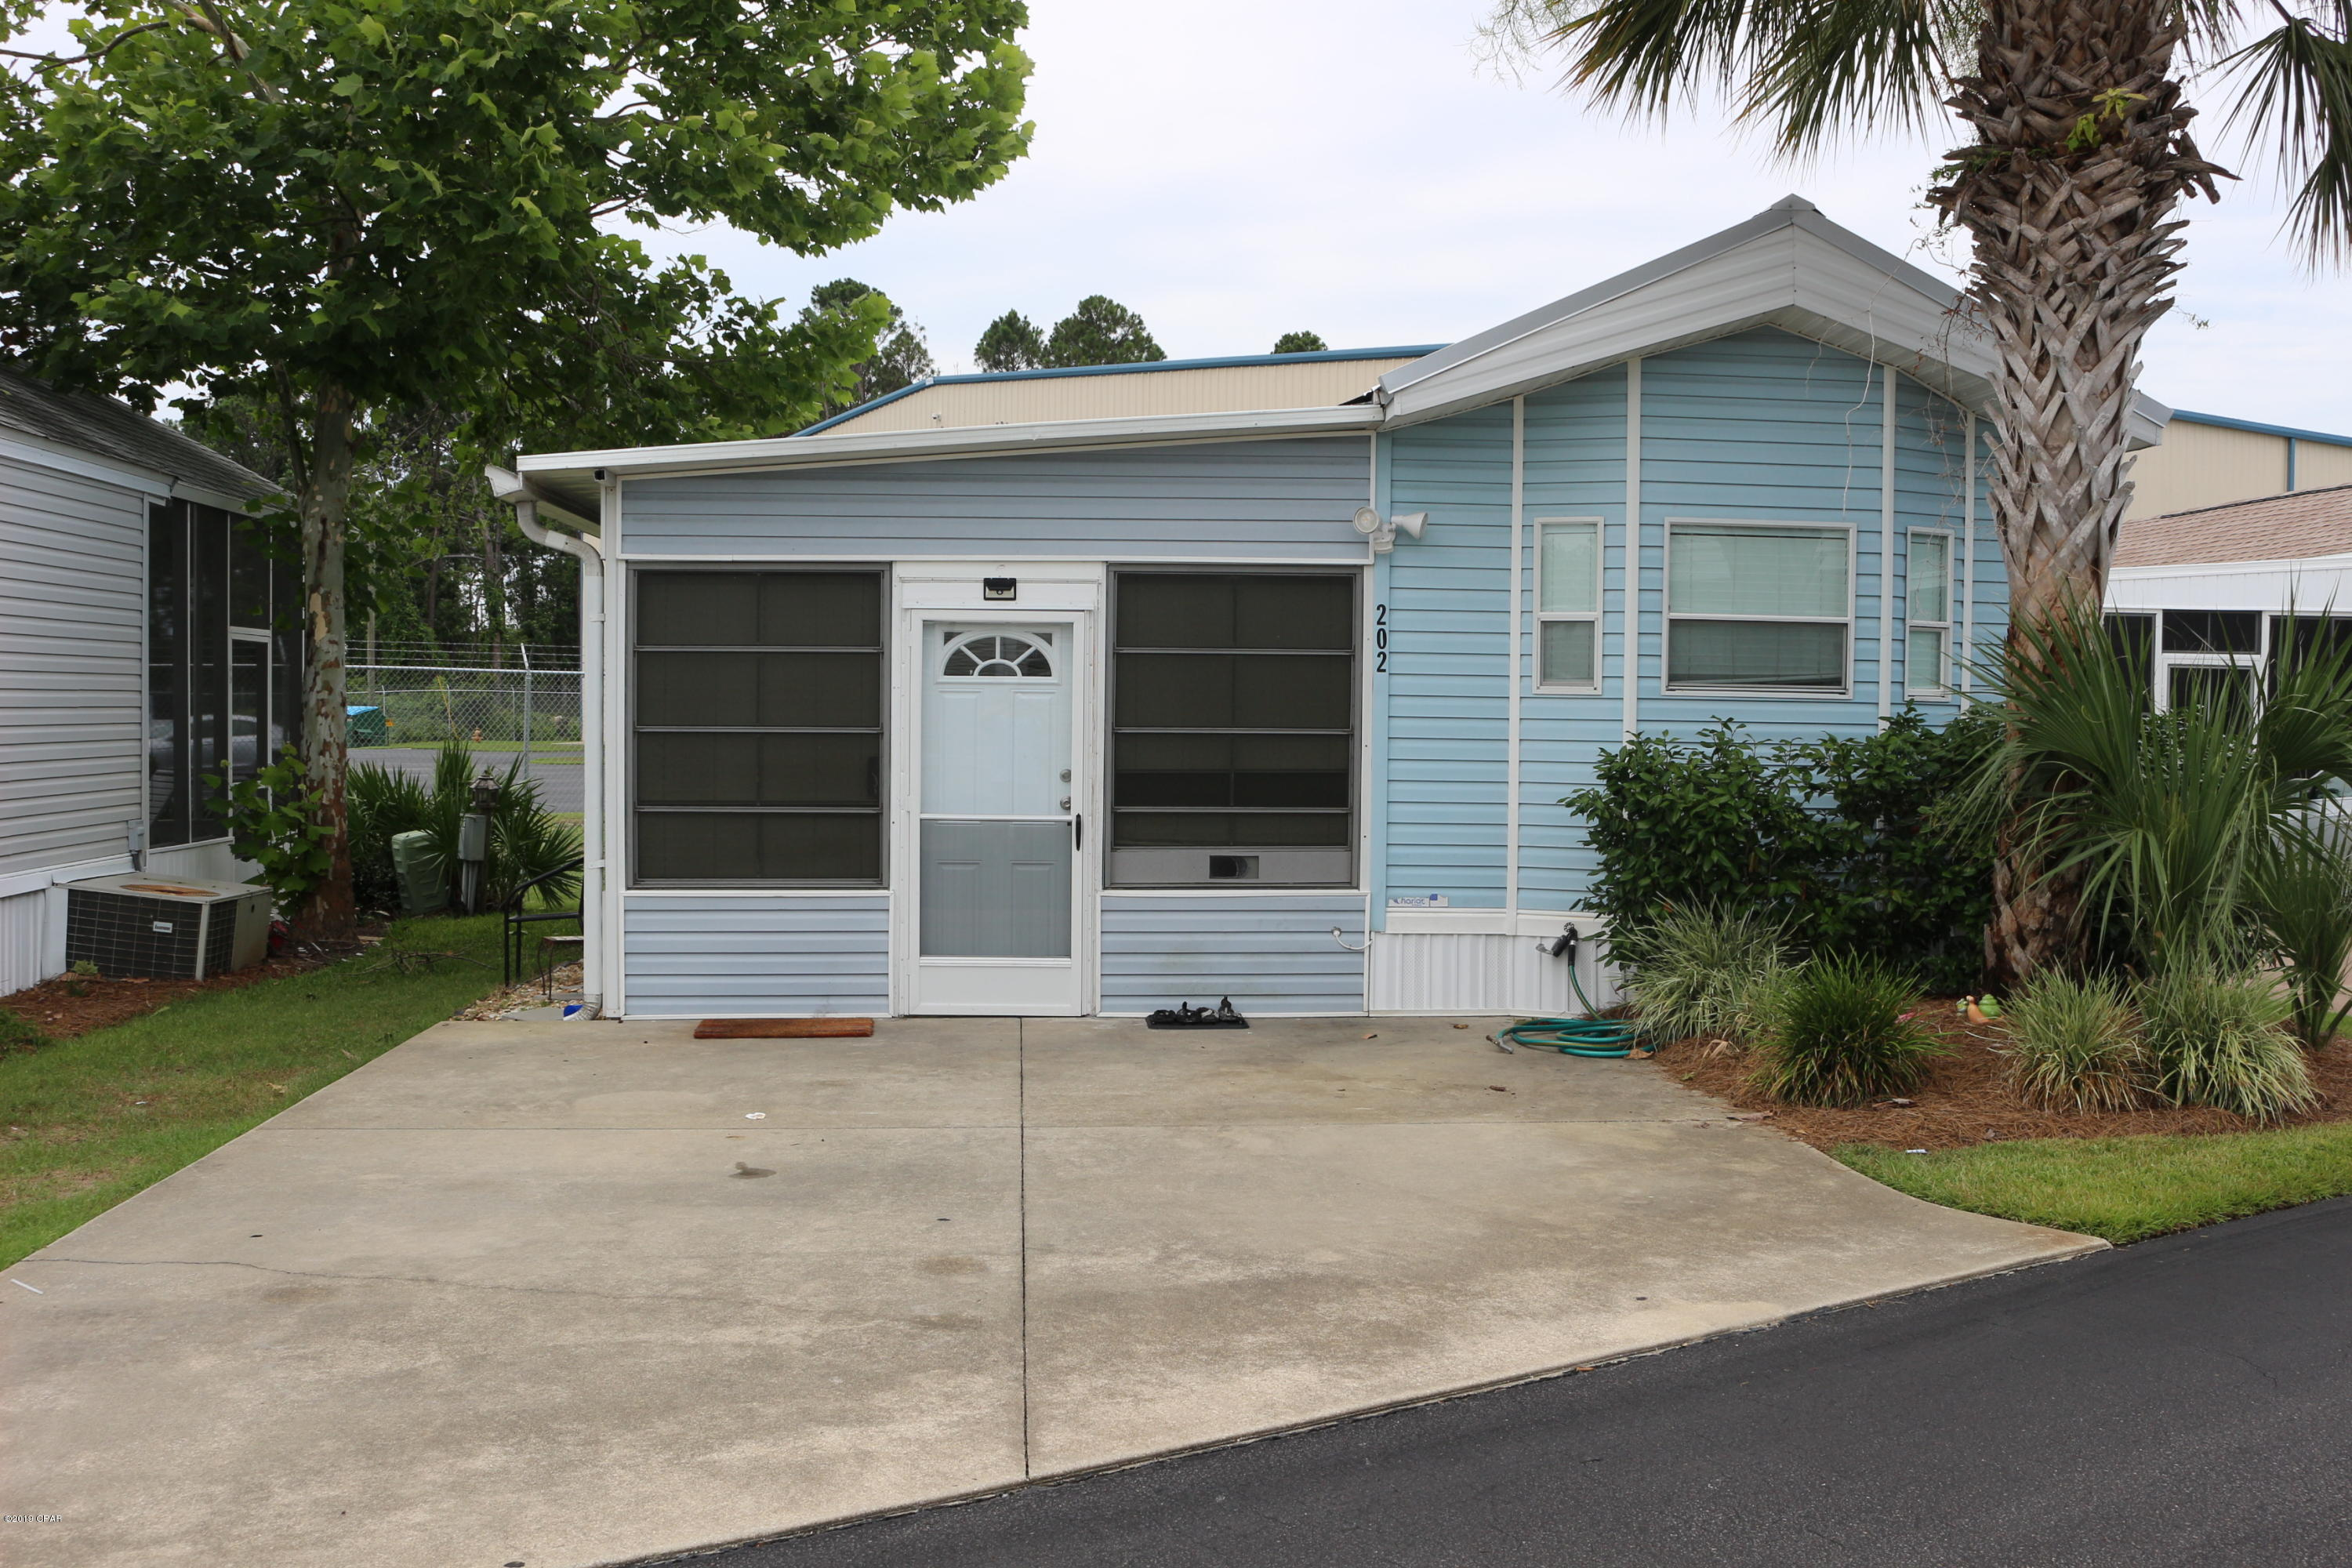 Photo of 1219 Thomas Drive #202, Panama City Beach, FL 32408